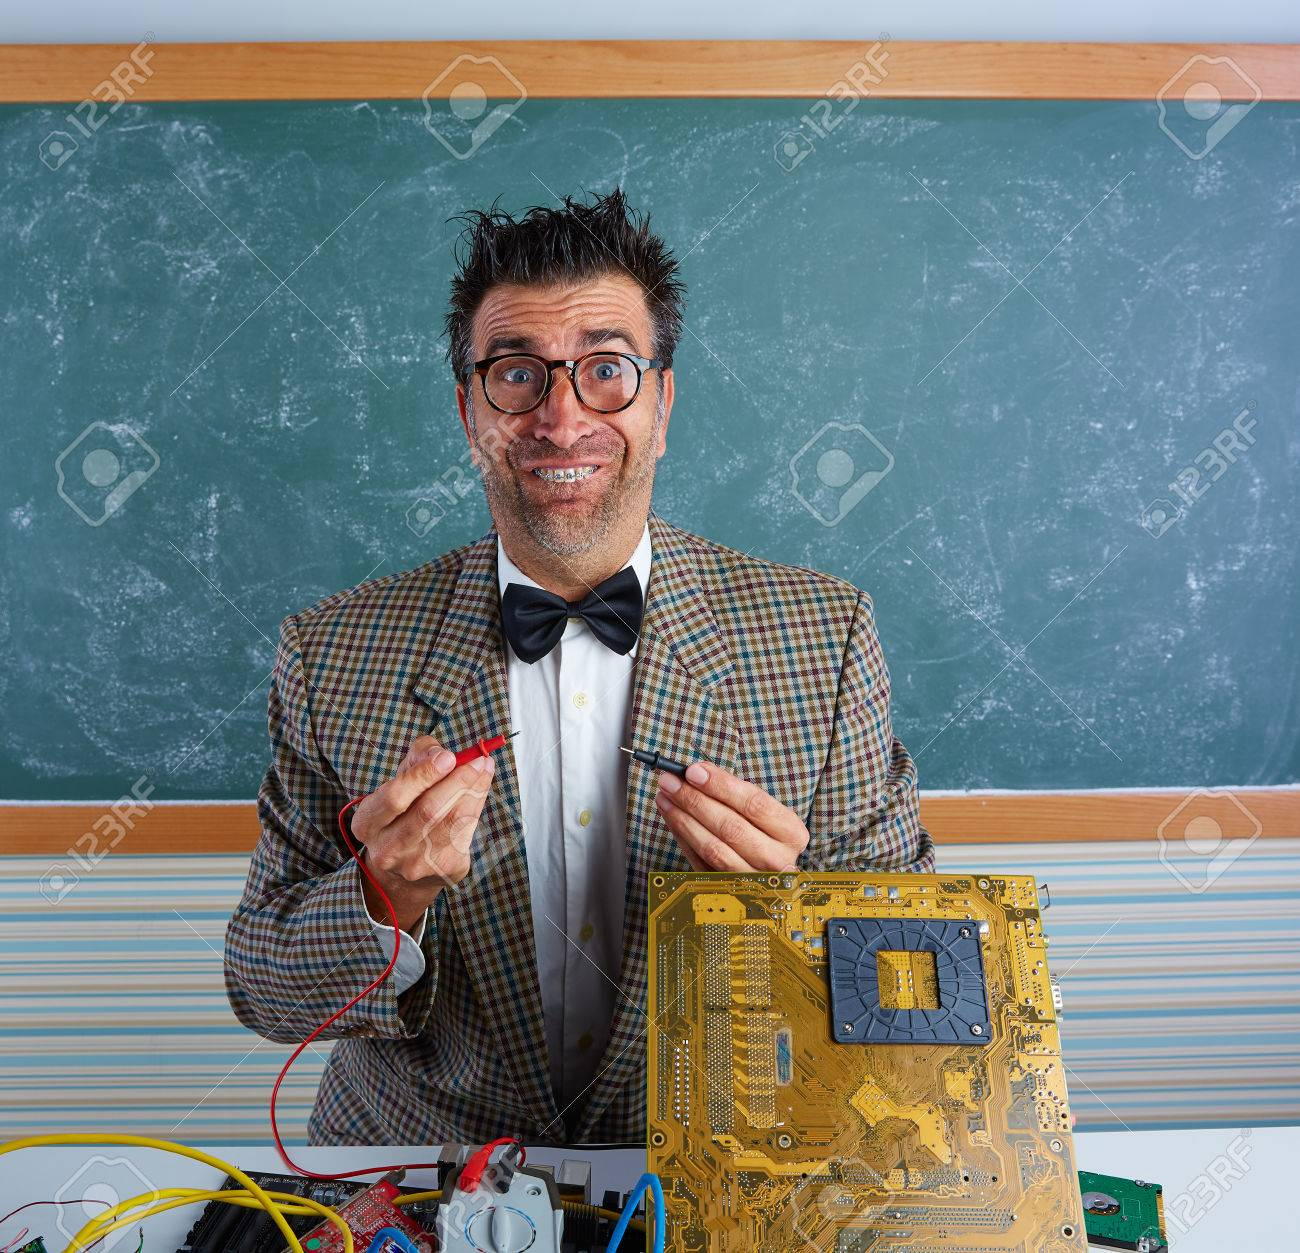 a1c56e16ba23 Nerd electronics technician retro teacher silly expression working in pcb  Stock Photo - 45321222